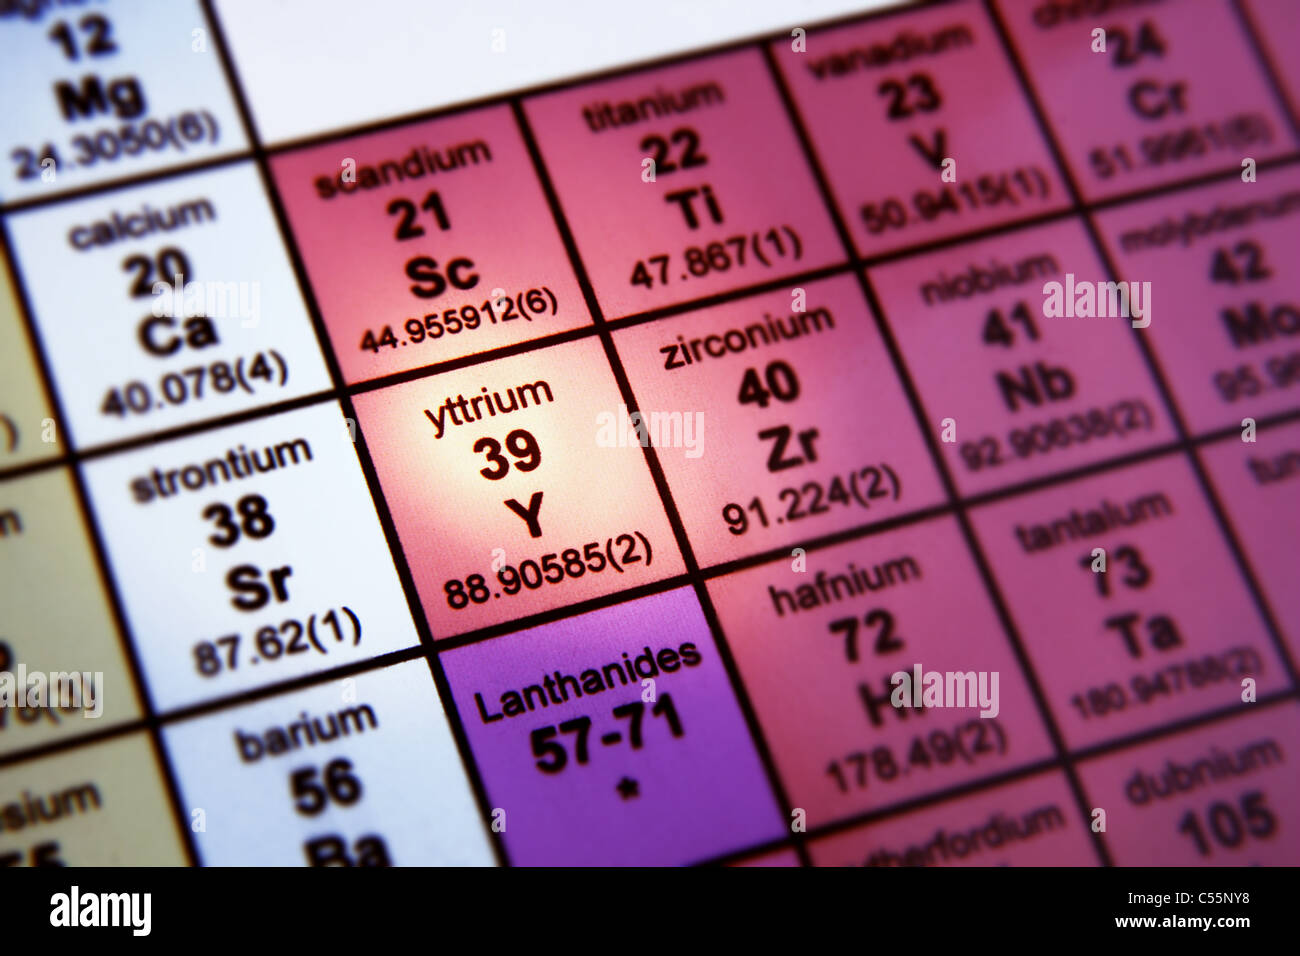 The periodic table of elements rare earth elements focus on the periodic table of elements rare earth elements focus on yttrium urtaz Images